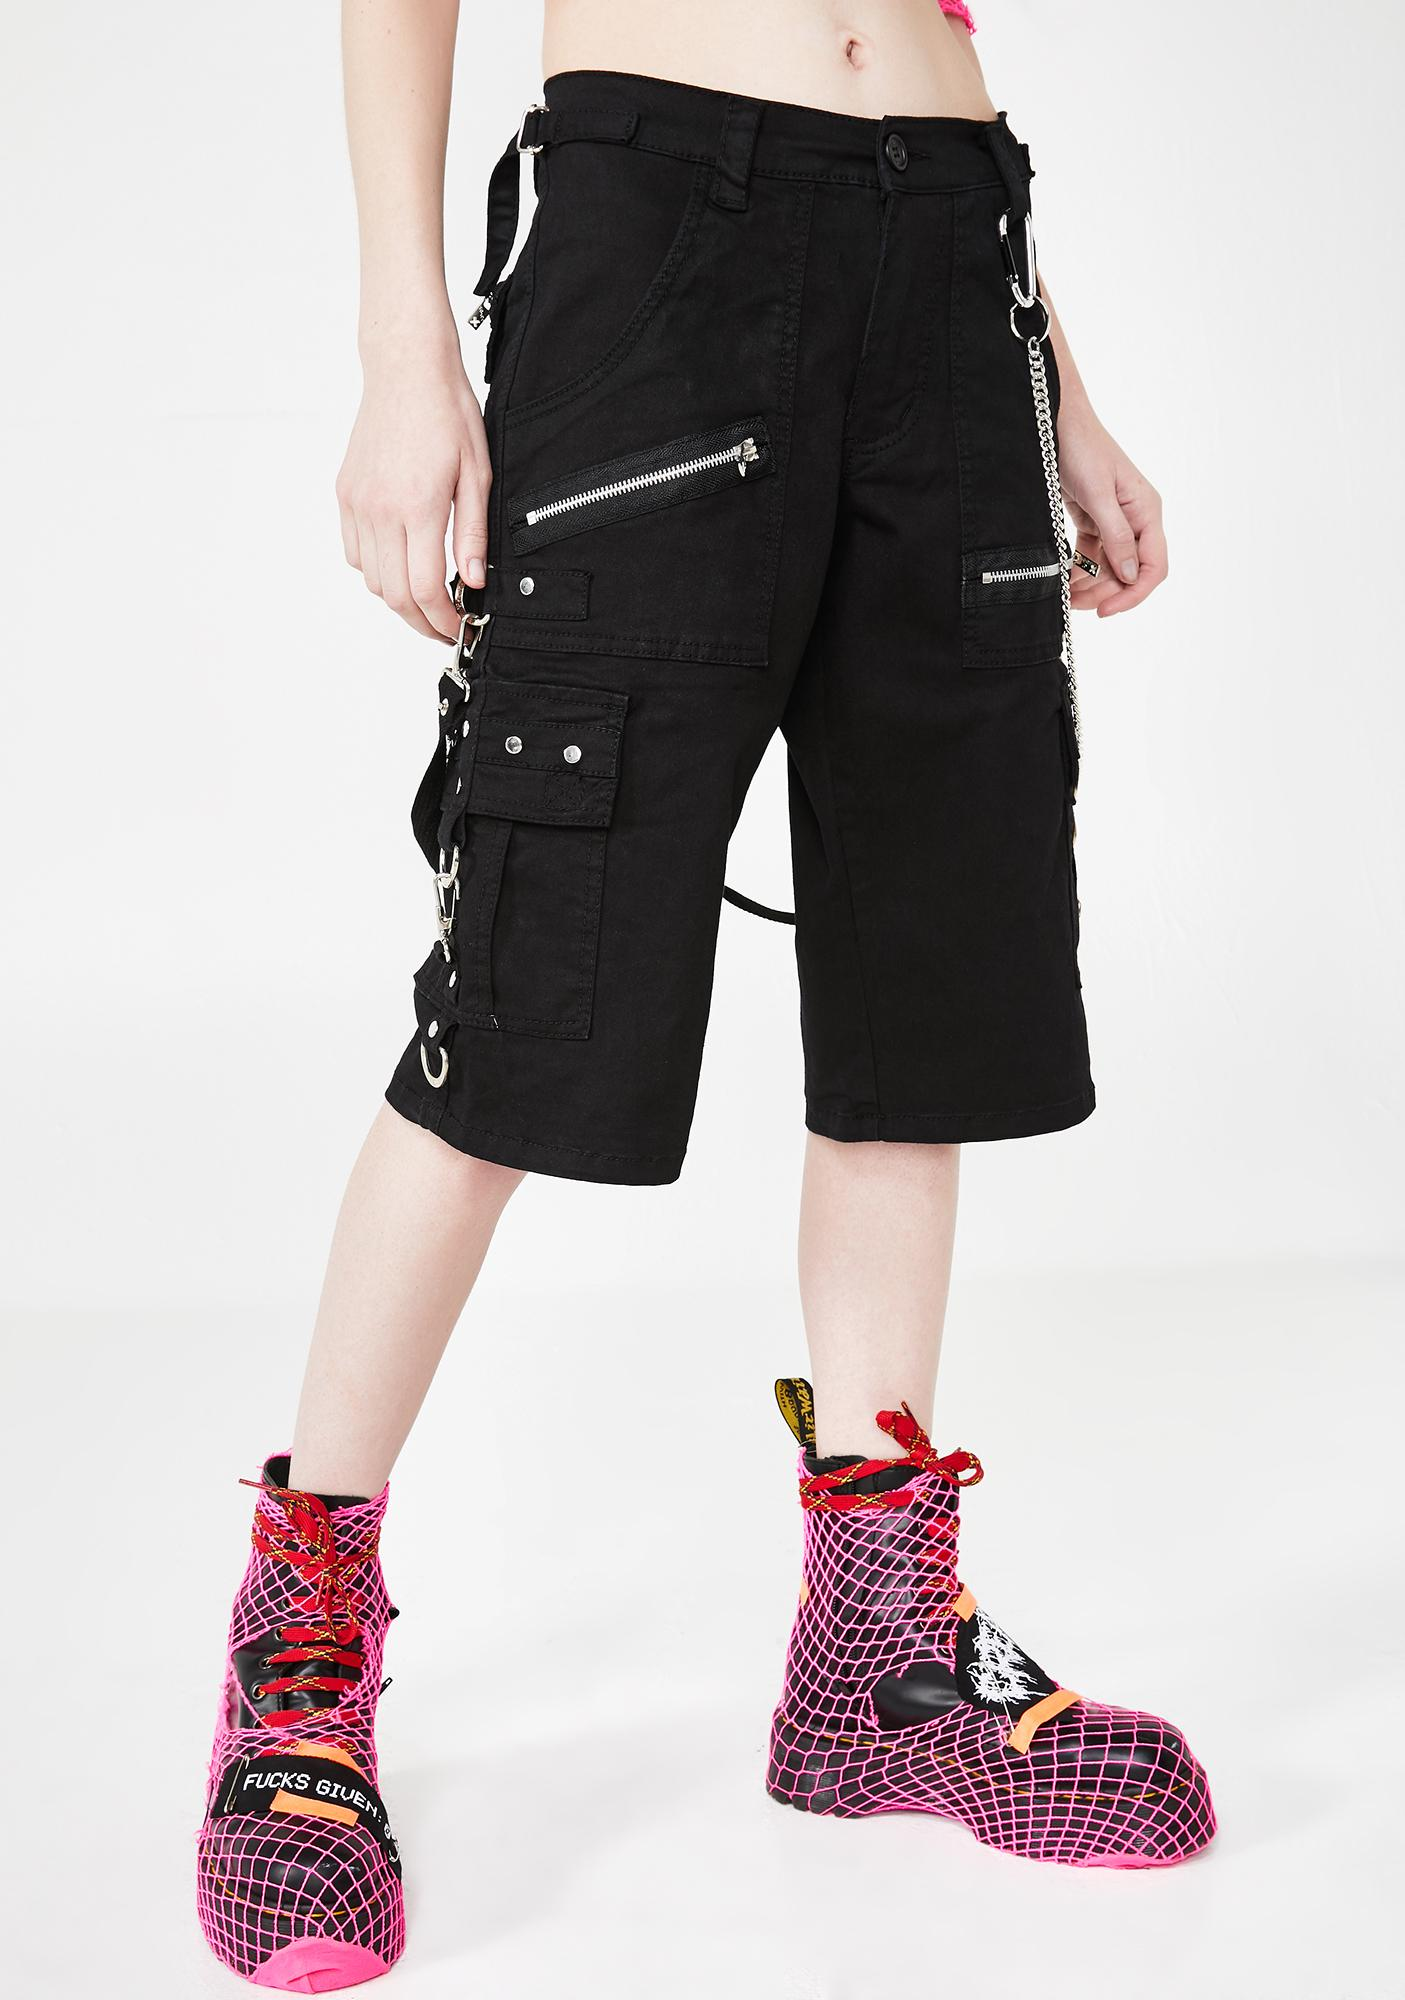 Tripp NYC Punk Rock Shorts